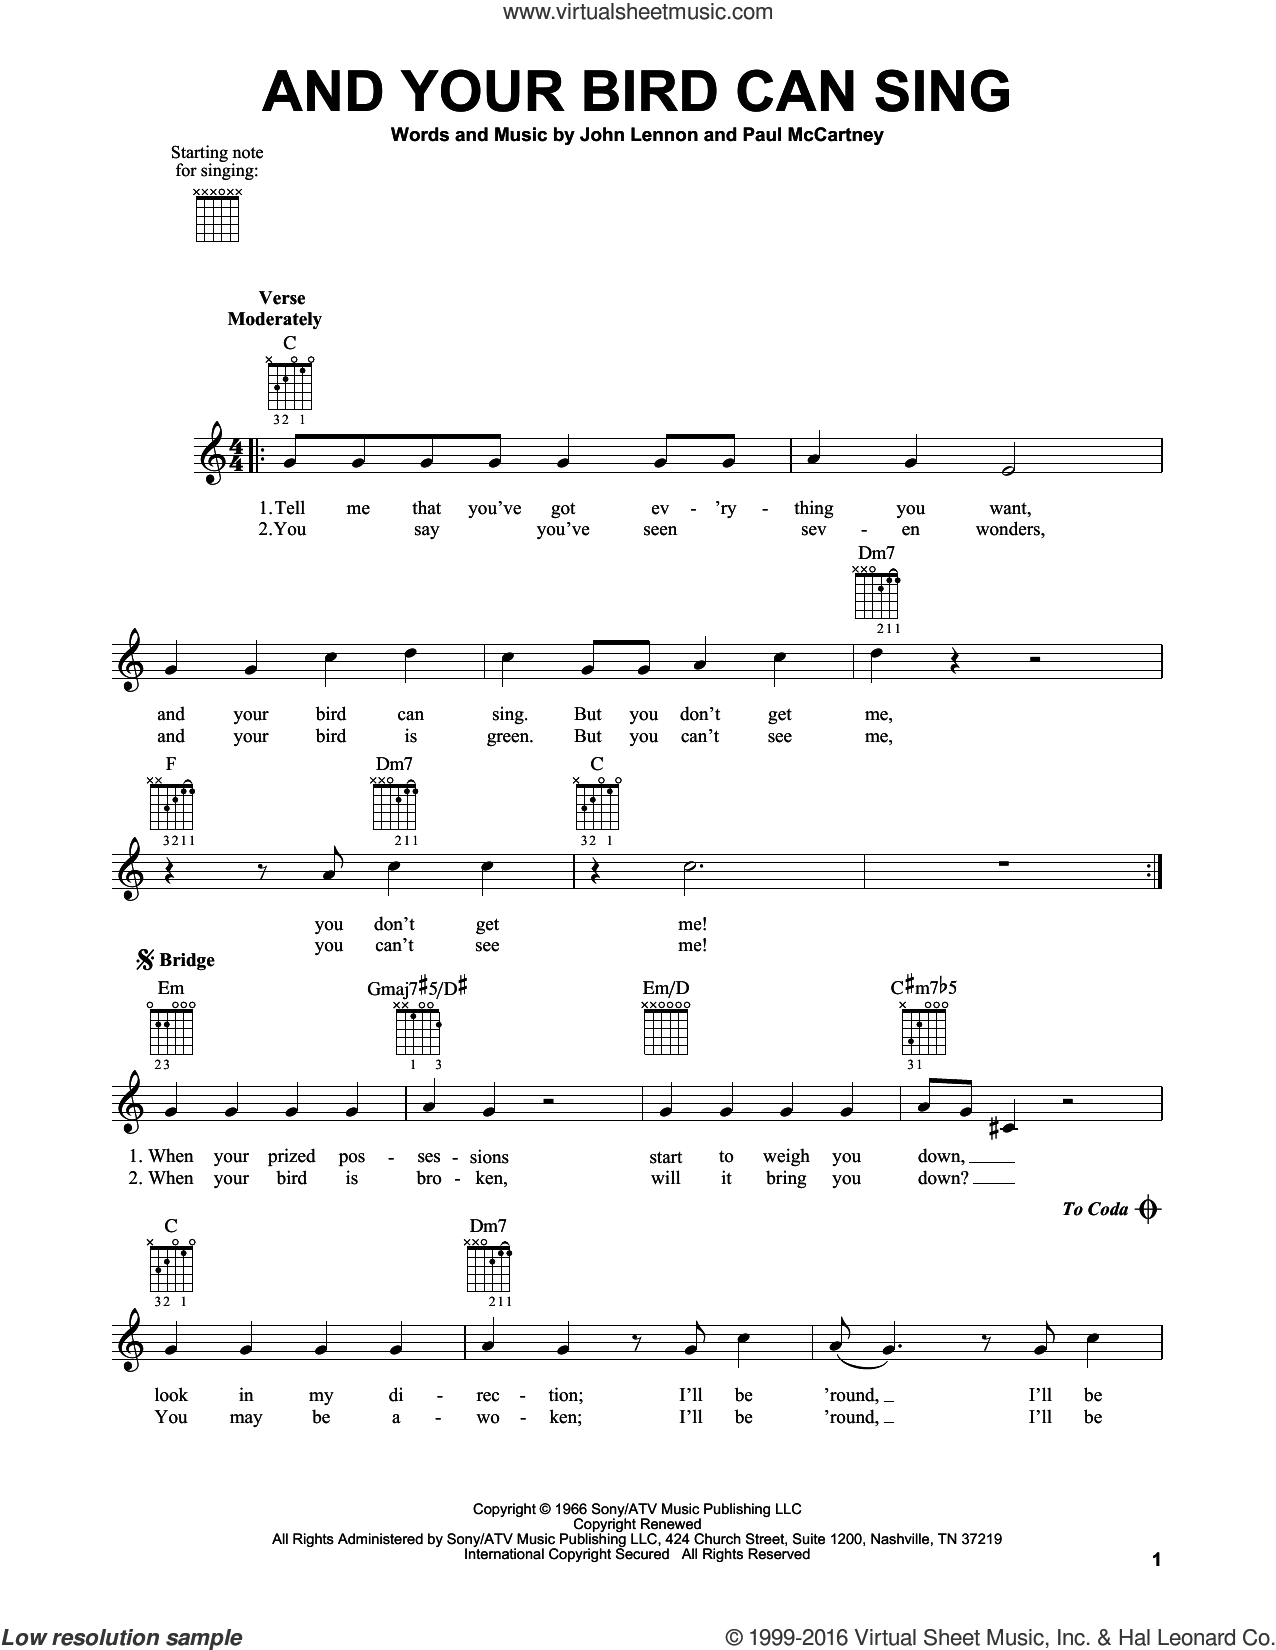 And Your Bird Can Sing sheet music for guitar solo (chords) by Paul McCartney, The Beatles and John Lennon. Score Image Preview.